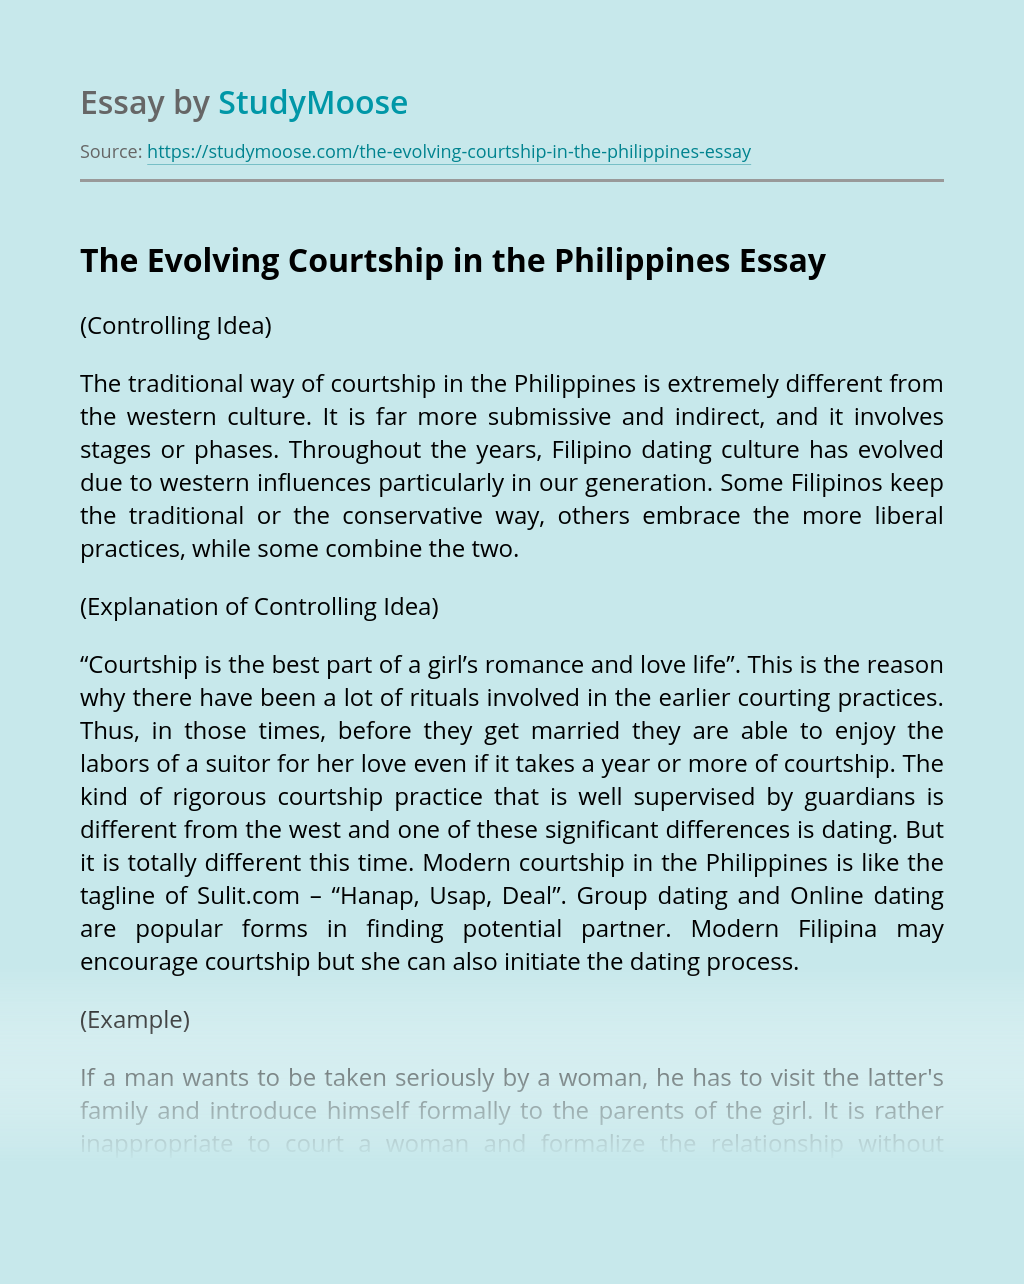 The Evolving Courtship in the Philippines